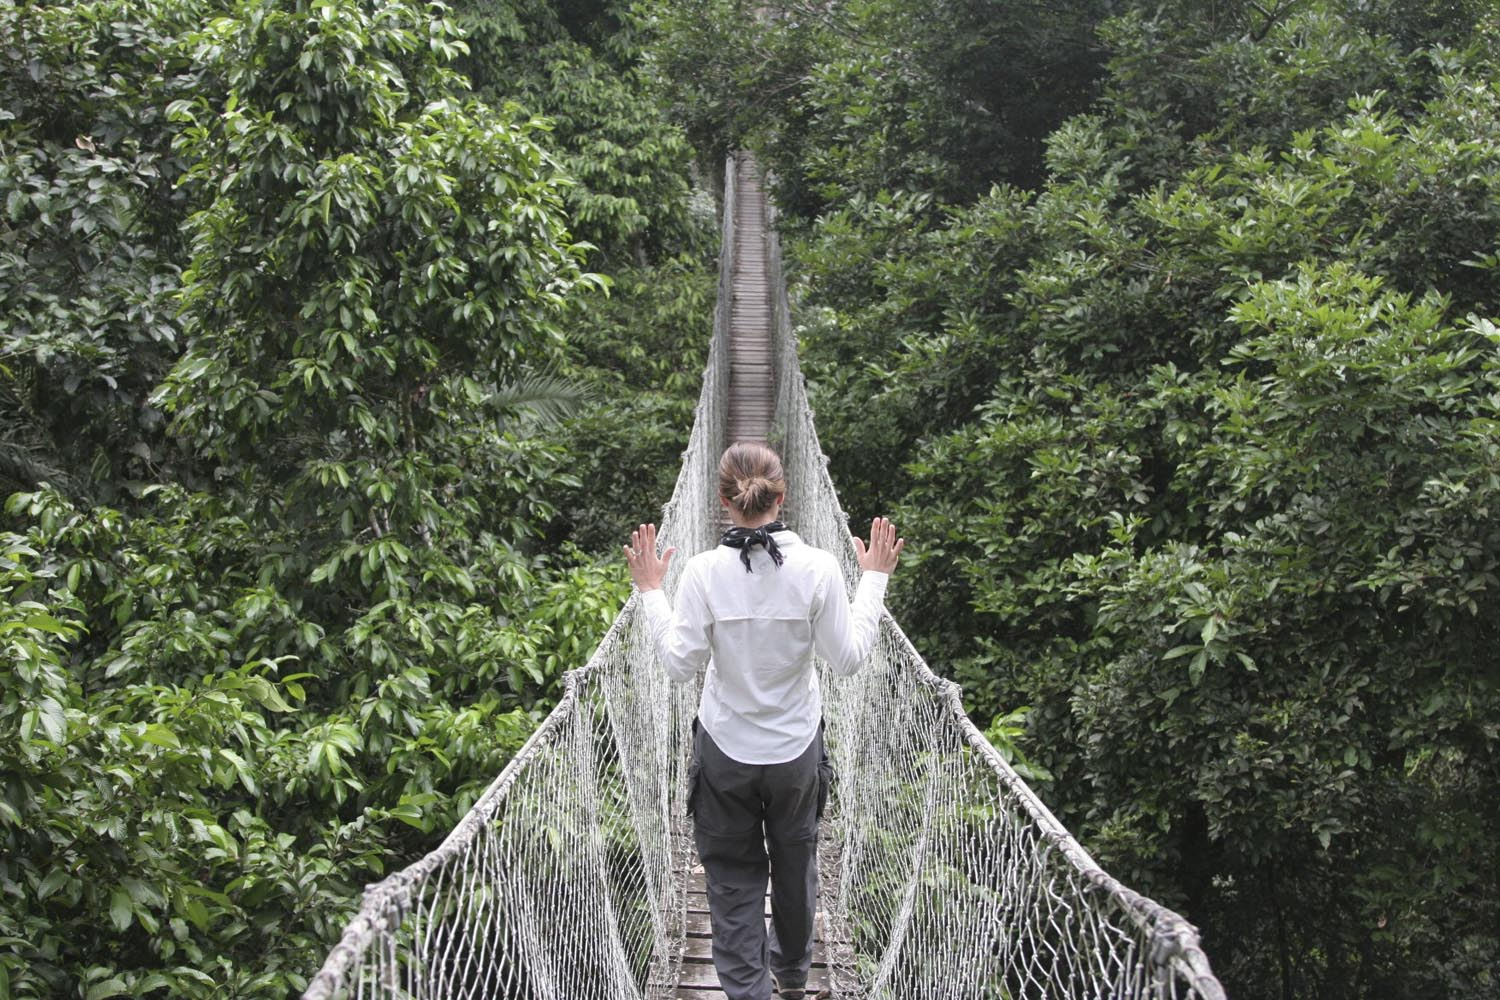 Gen Padalecki walking over rope bridge in Machu Picchu